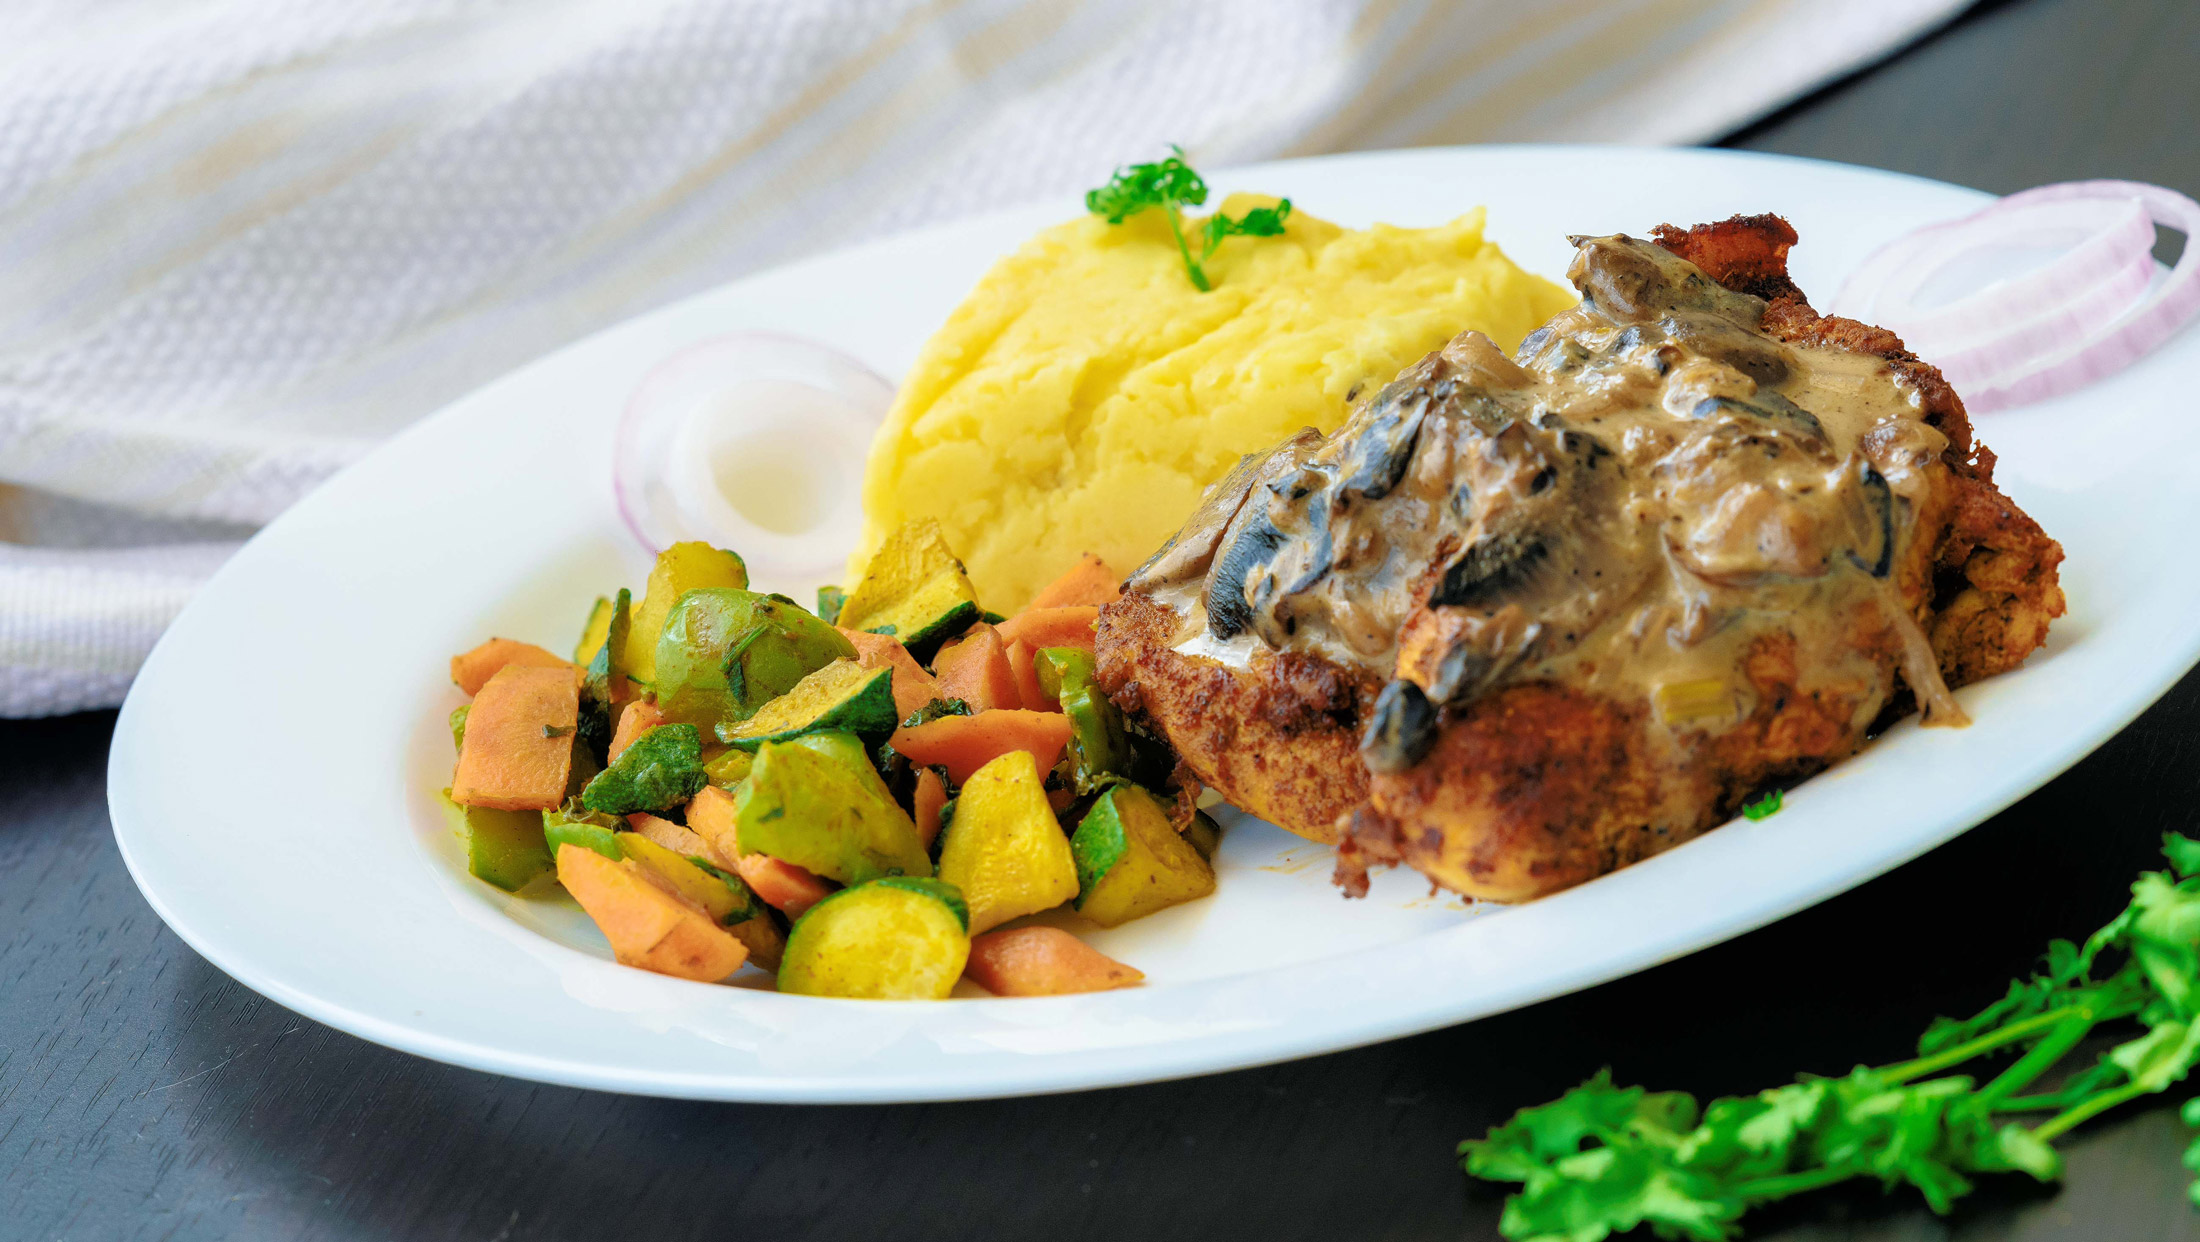 Pan Fried fish with Mashed potatoes and garden vegitables